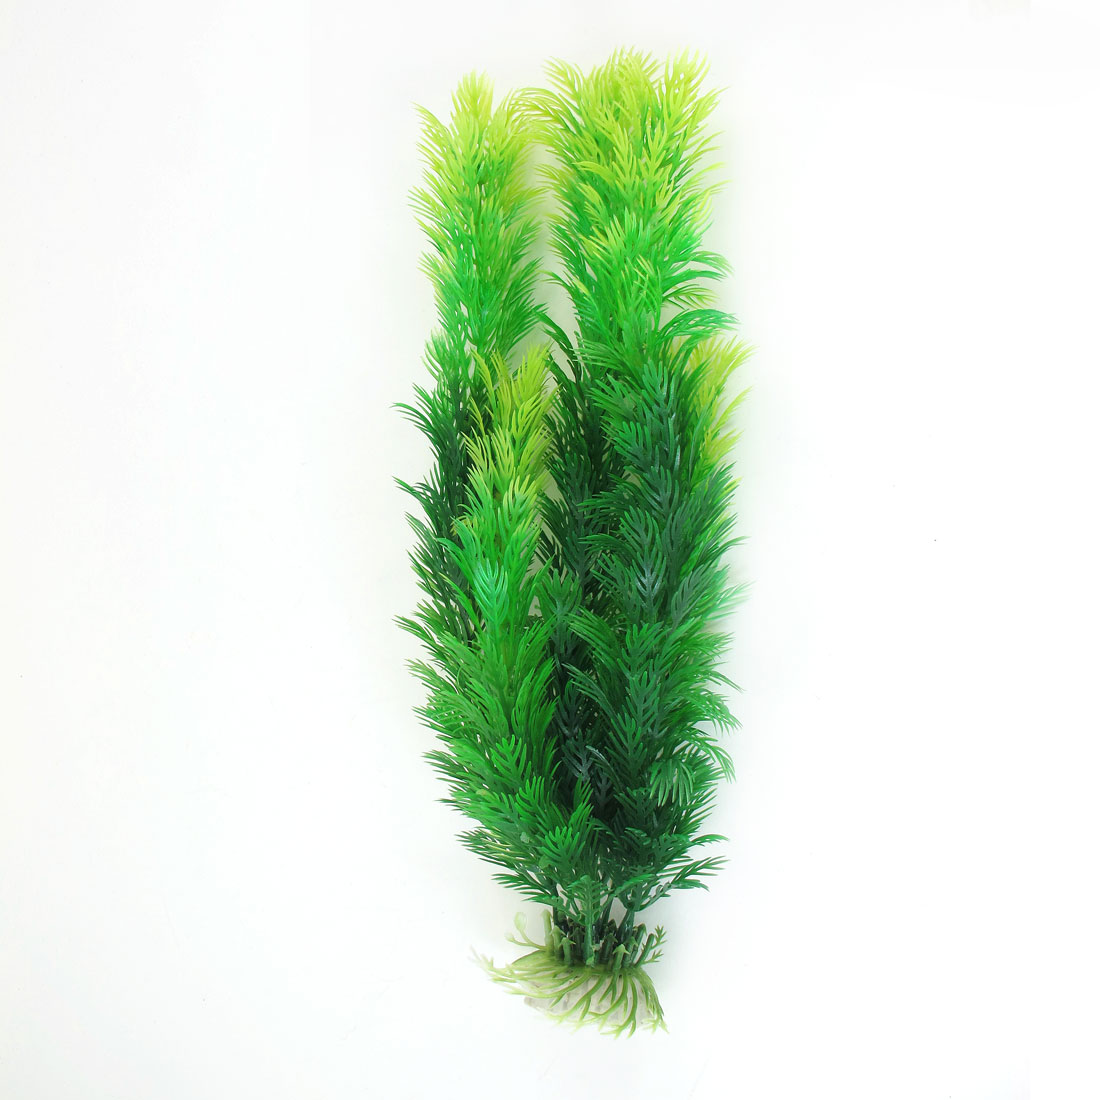 "Fishbowl Aquarium Ceramic Base Emulational Water Plant Grass Green 11.8"" Height"